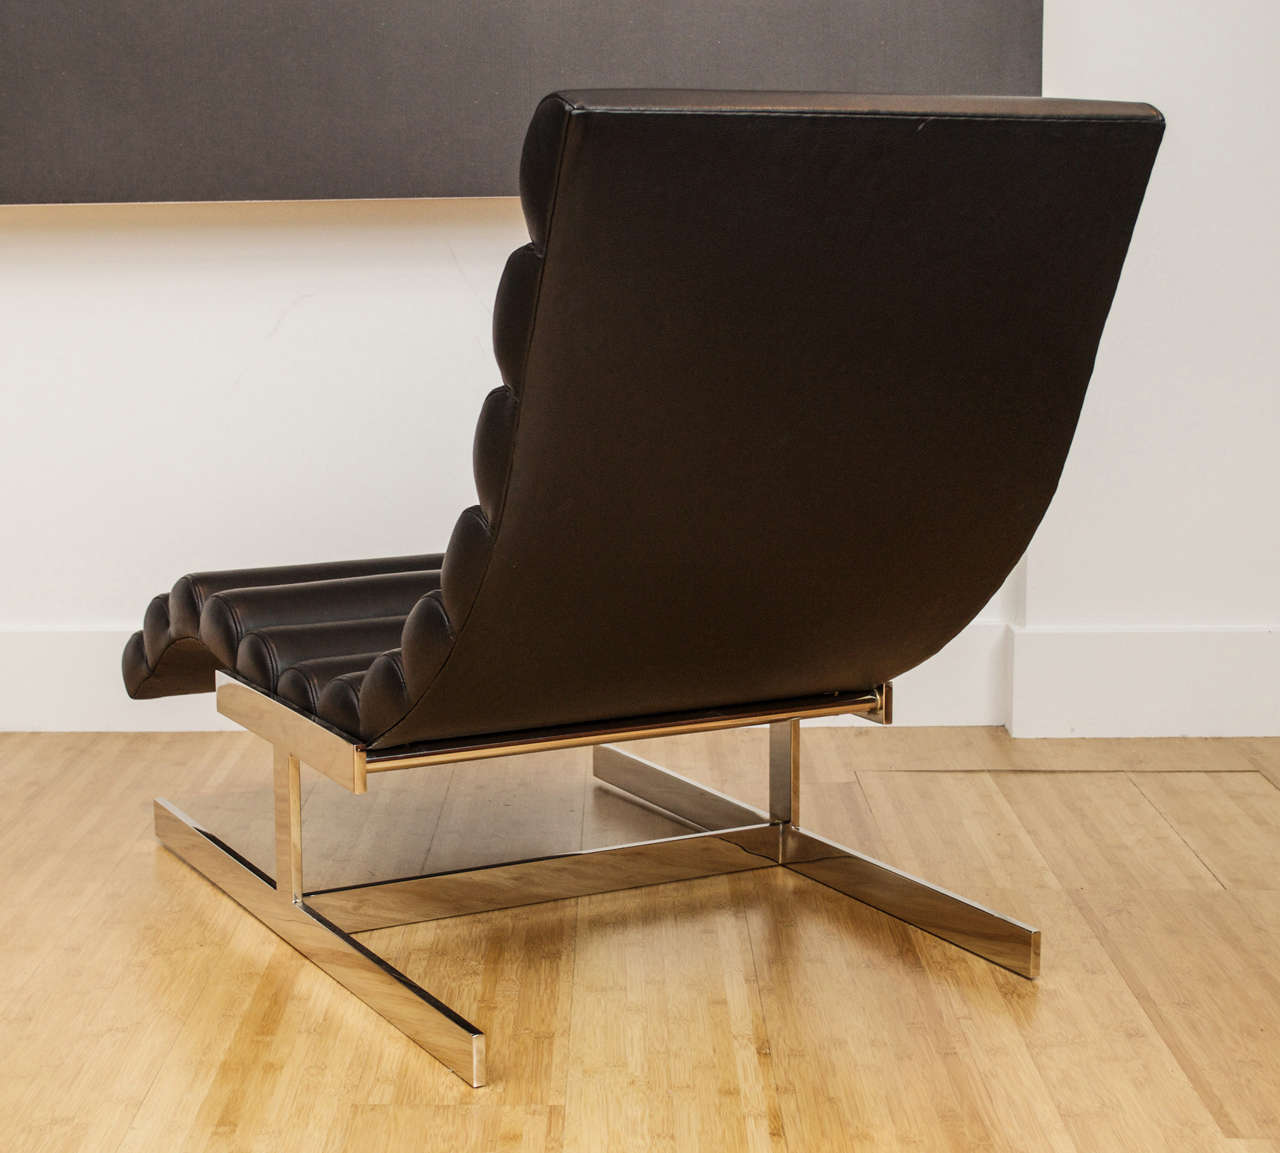 Milo baughman style wave chaise longue for sale at 1stdibs for Chaise longue sale